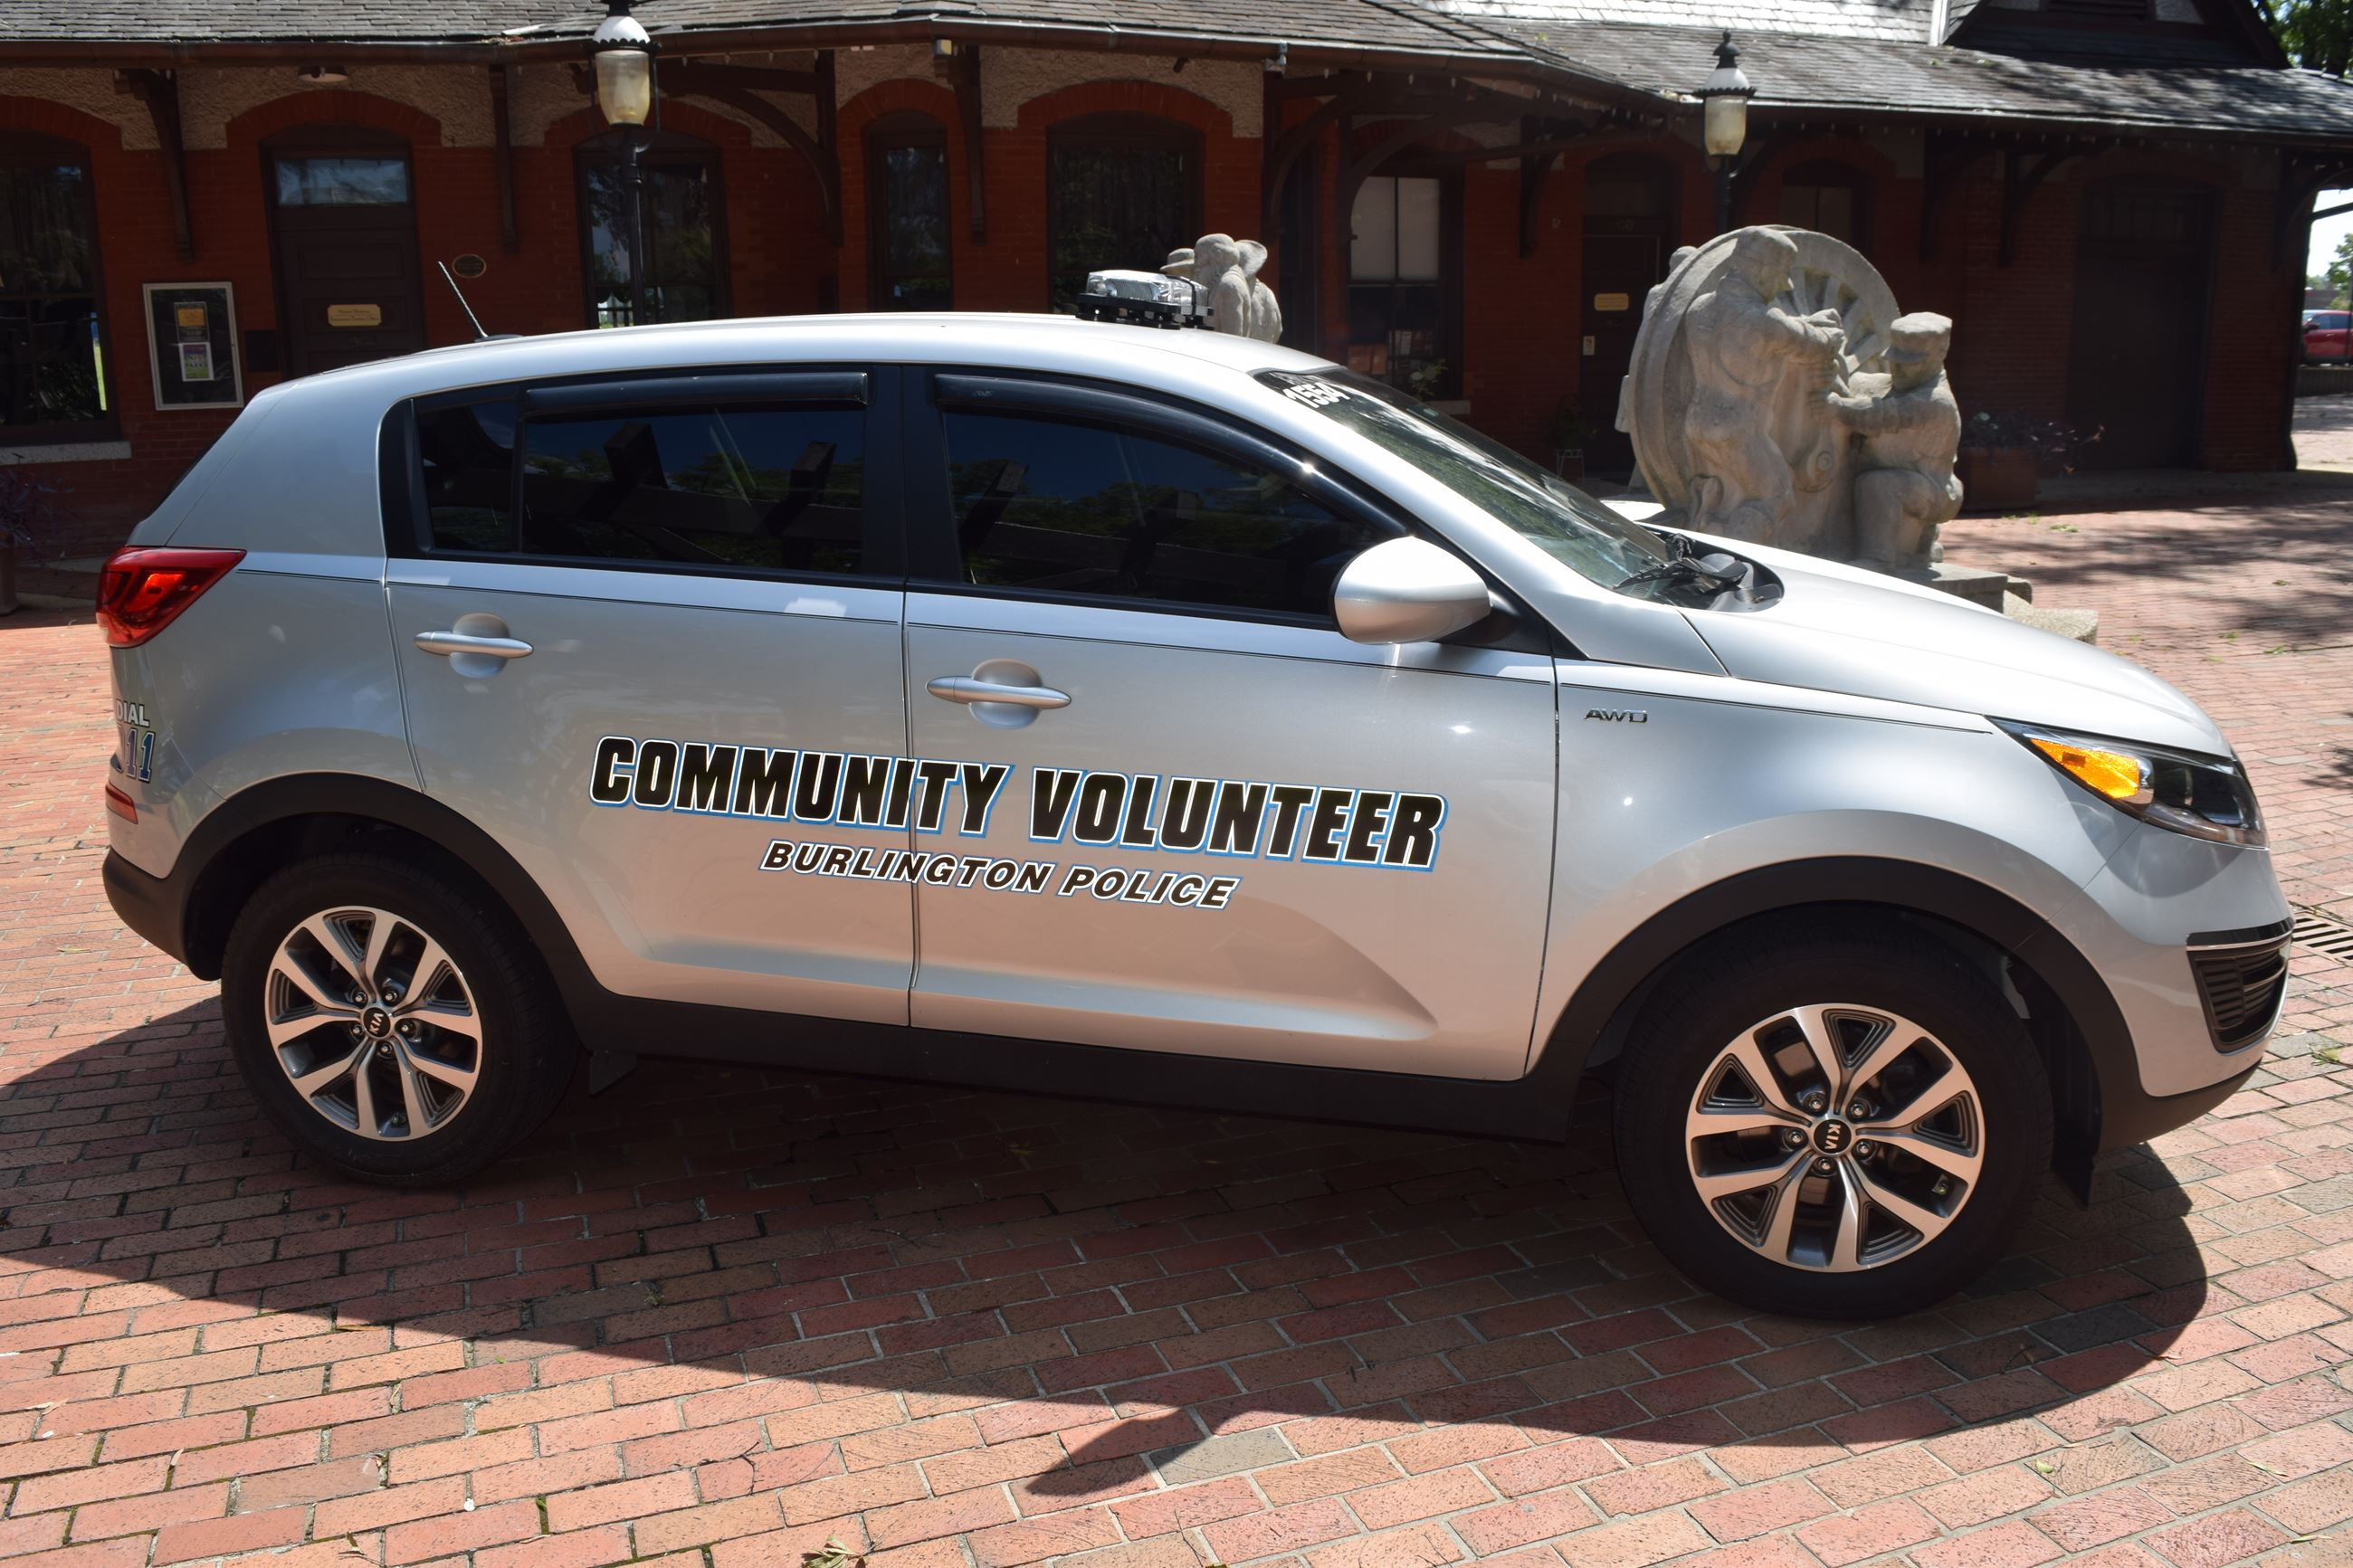 Community Relations Officer Vehicle